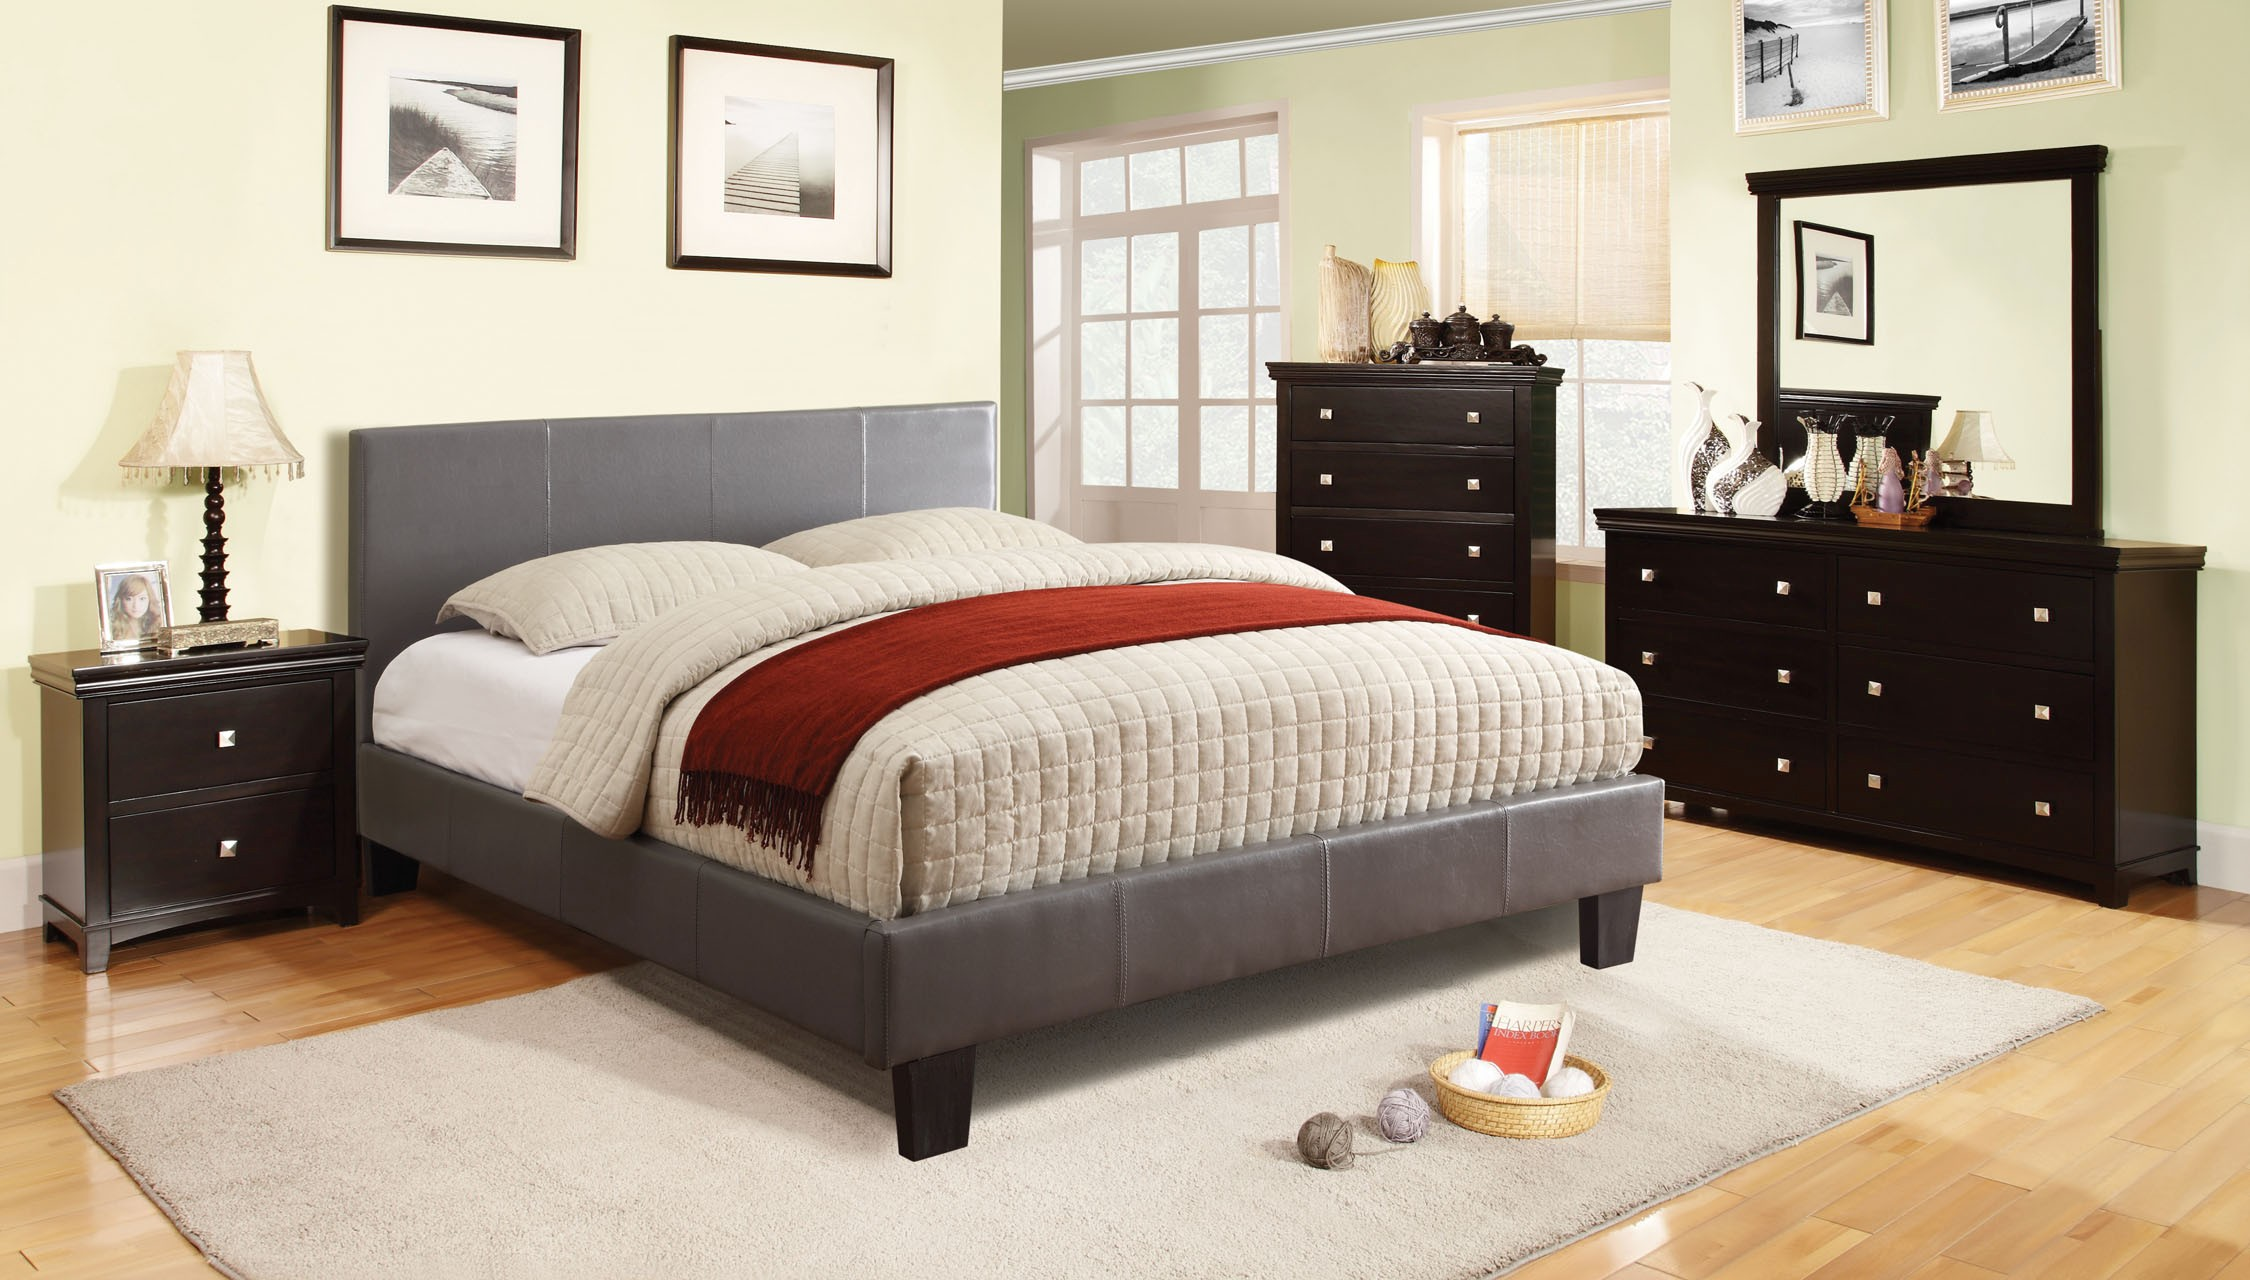 SALE! Winn Park Bedroom Set - Gray